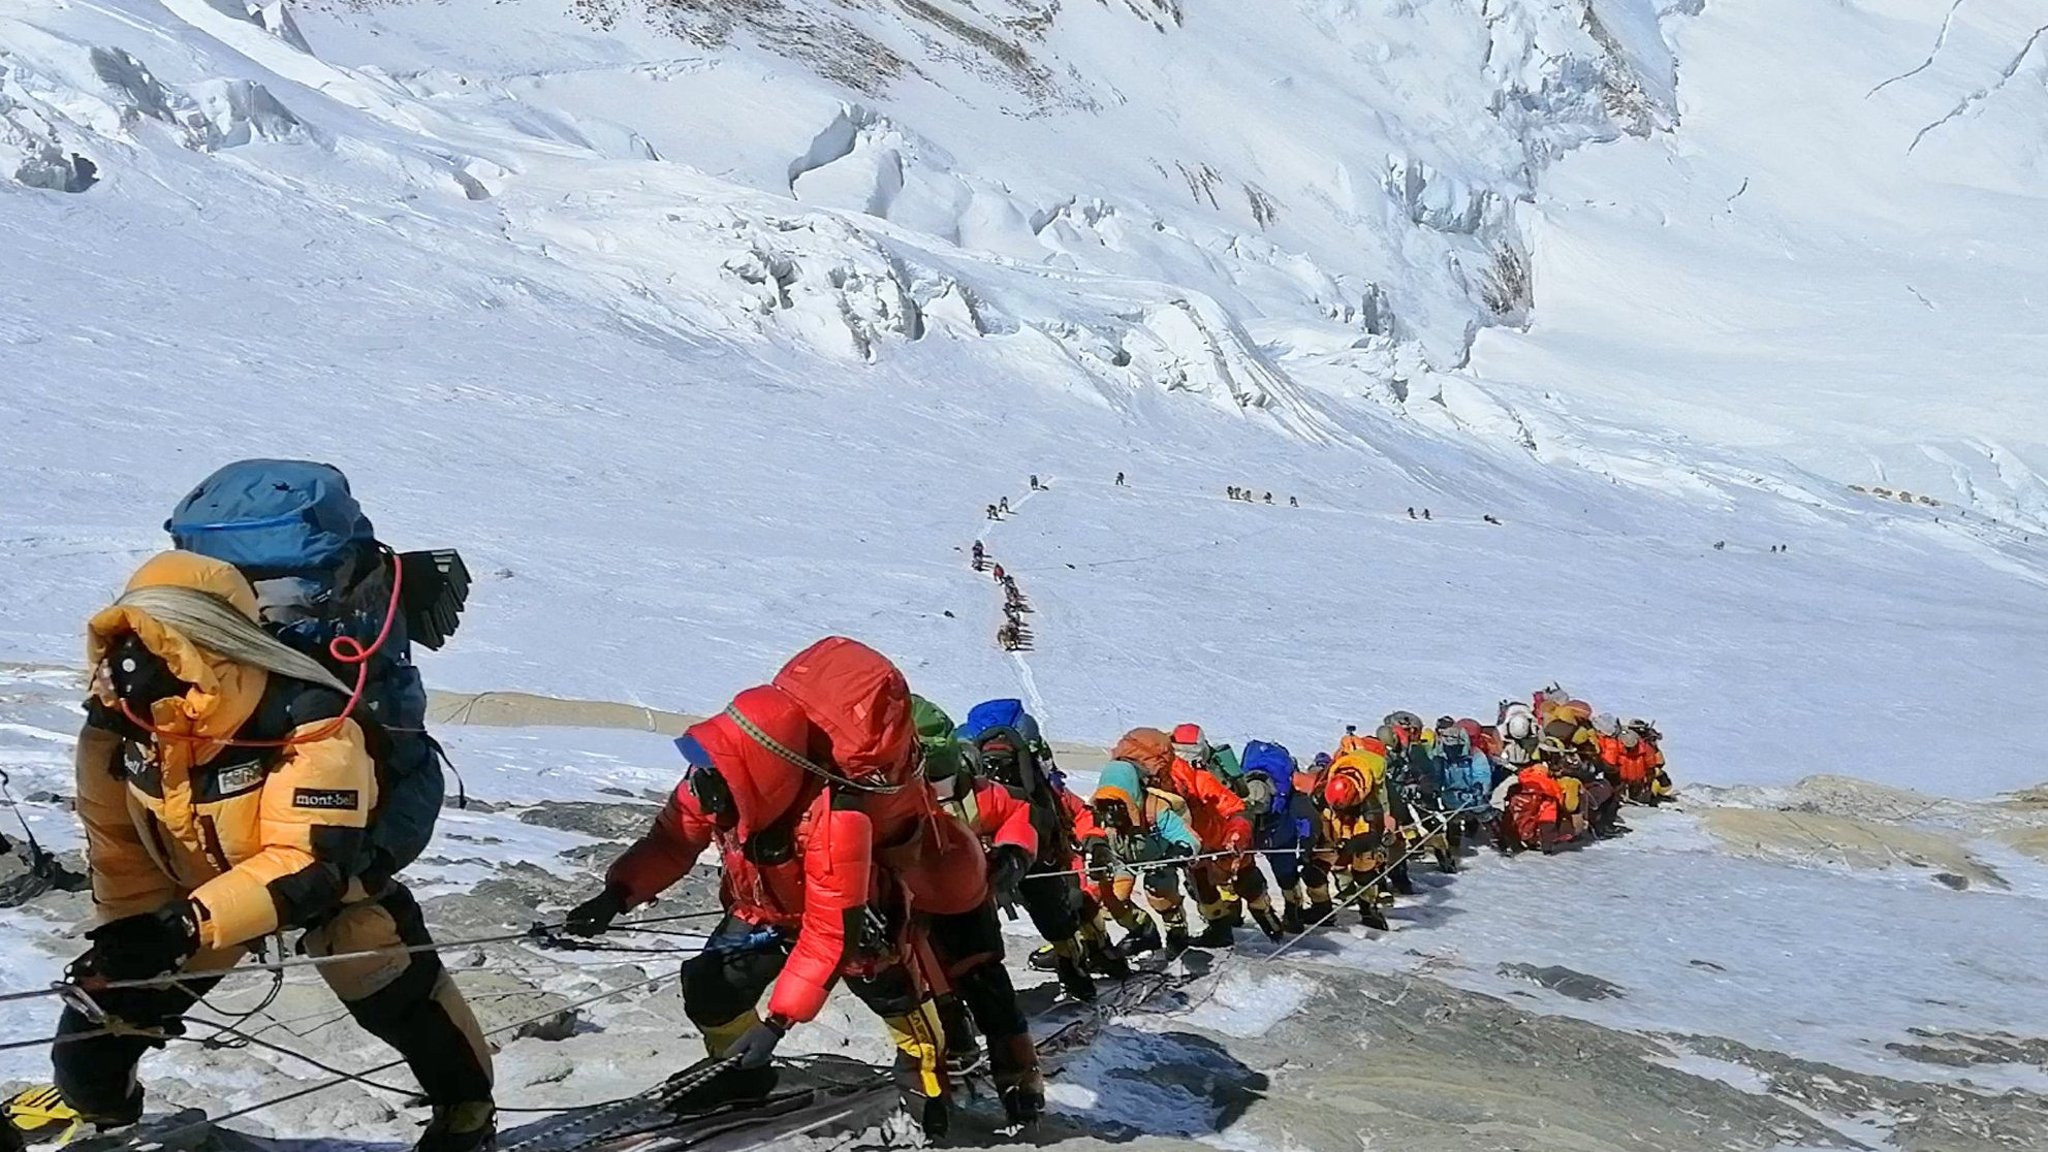 Covid-19: Mount Everest Climbers Test Positive